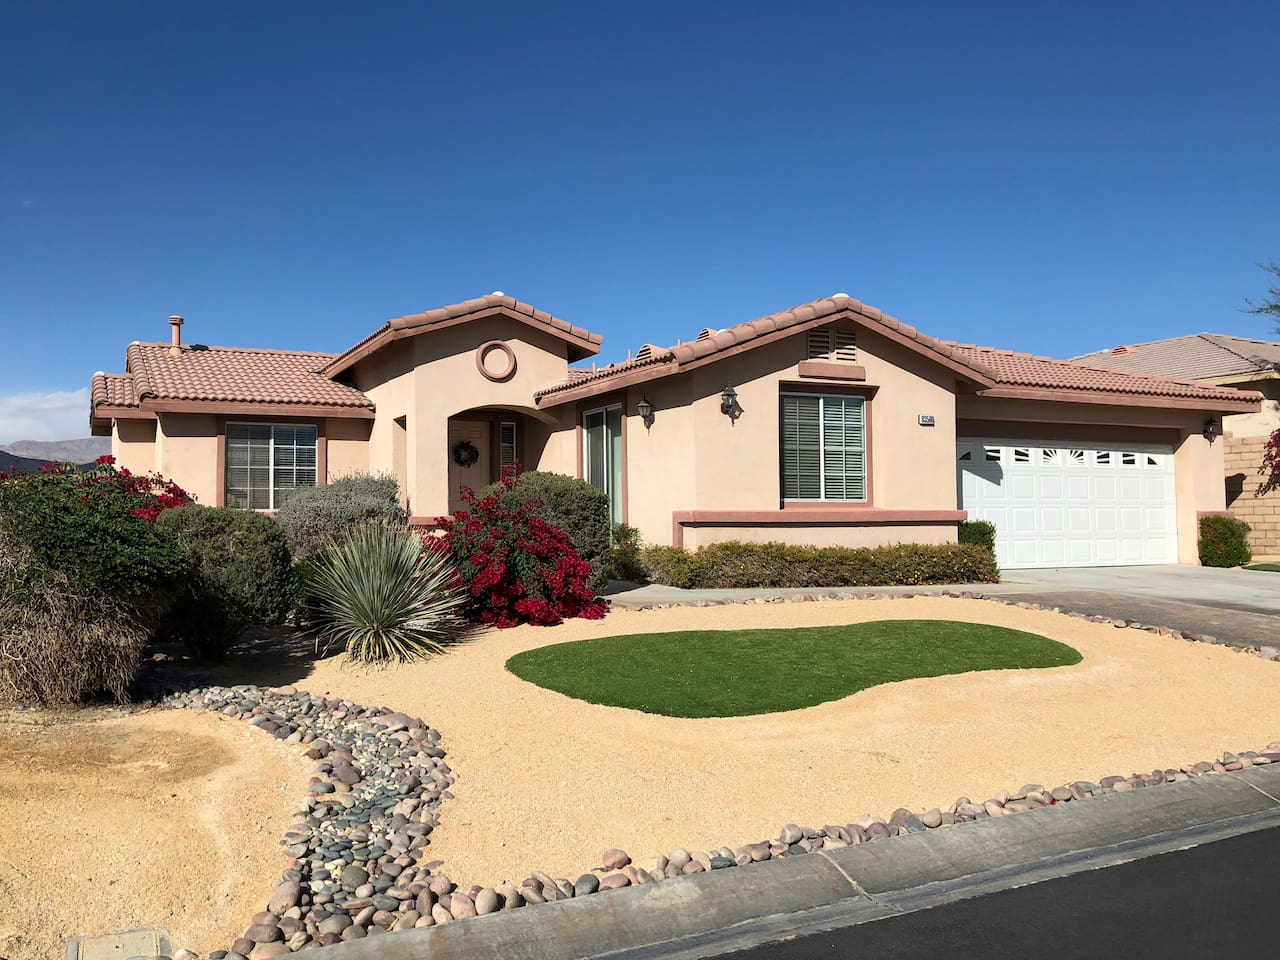 3 Bedroom / 3 Bath in gated community